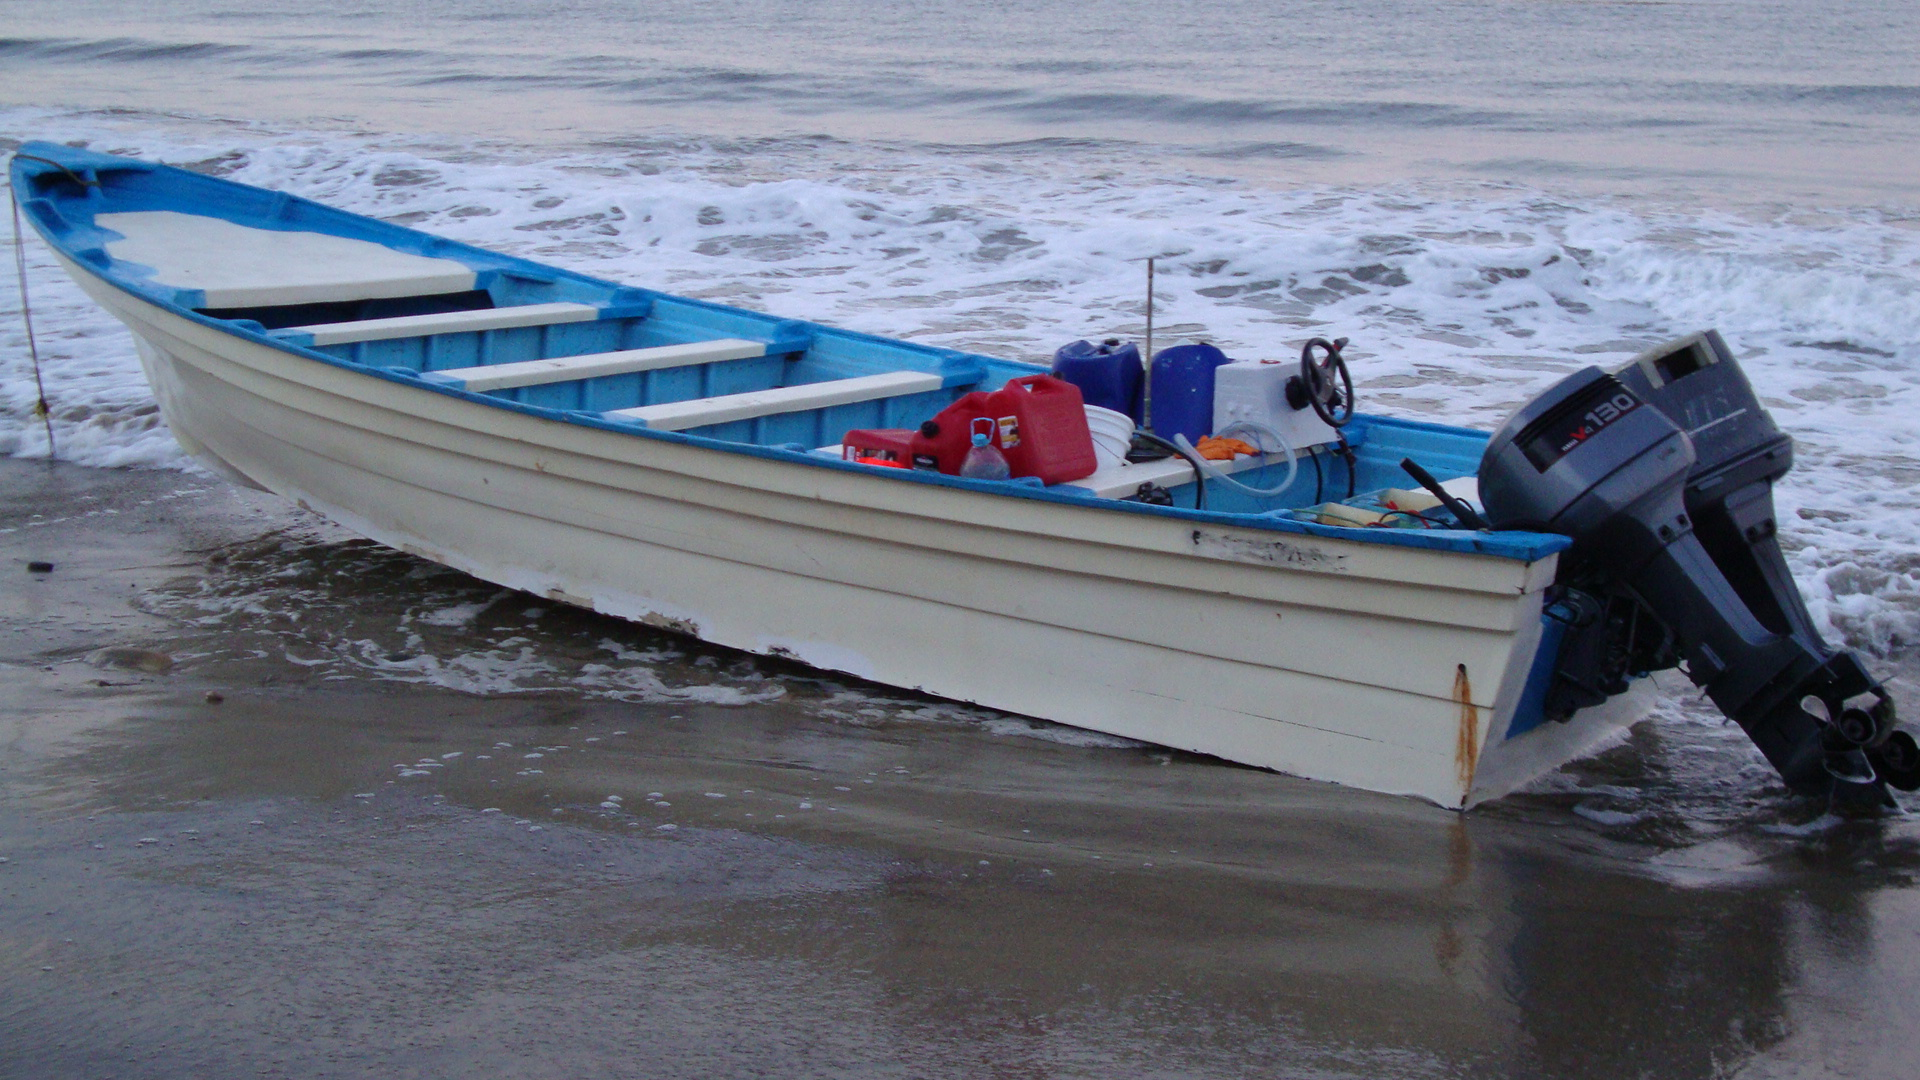 Officials request additional funding to stop Panga boat smugglers